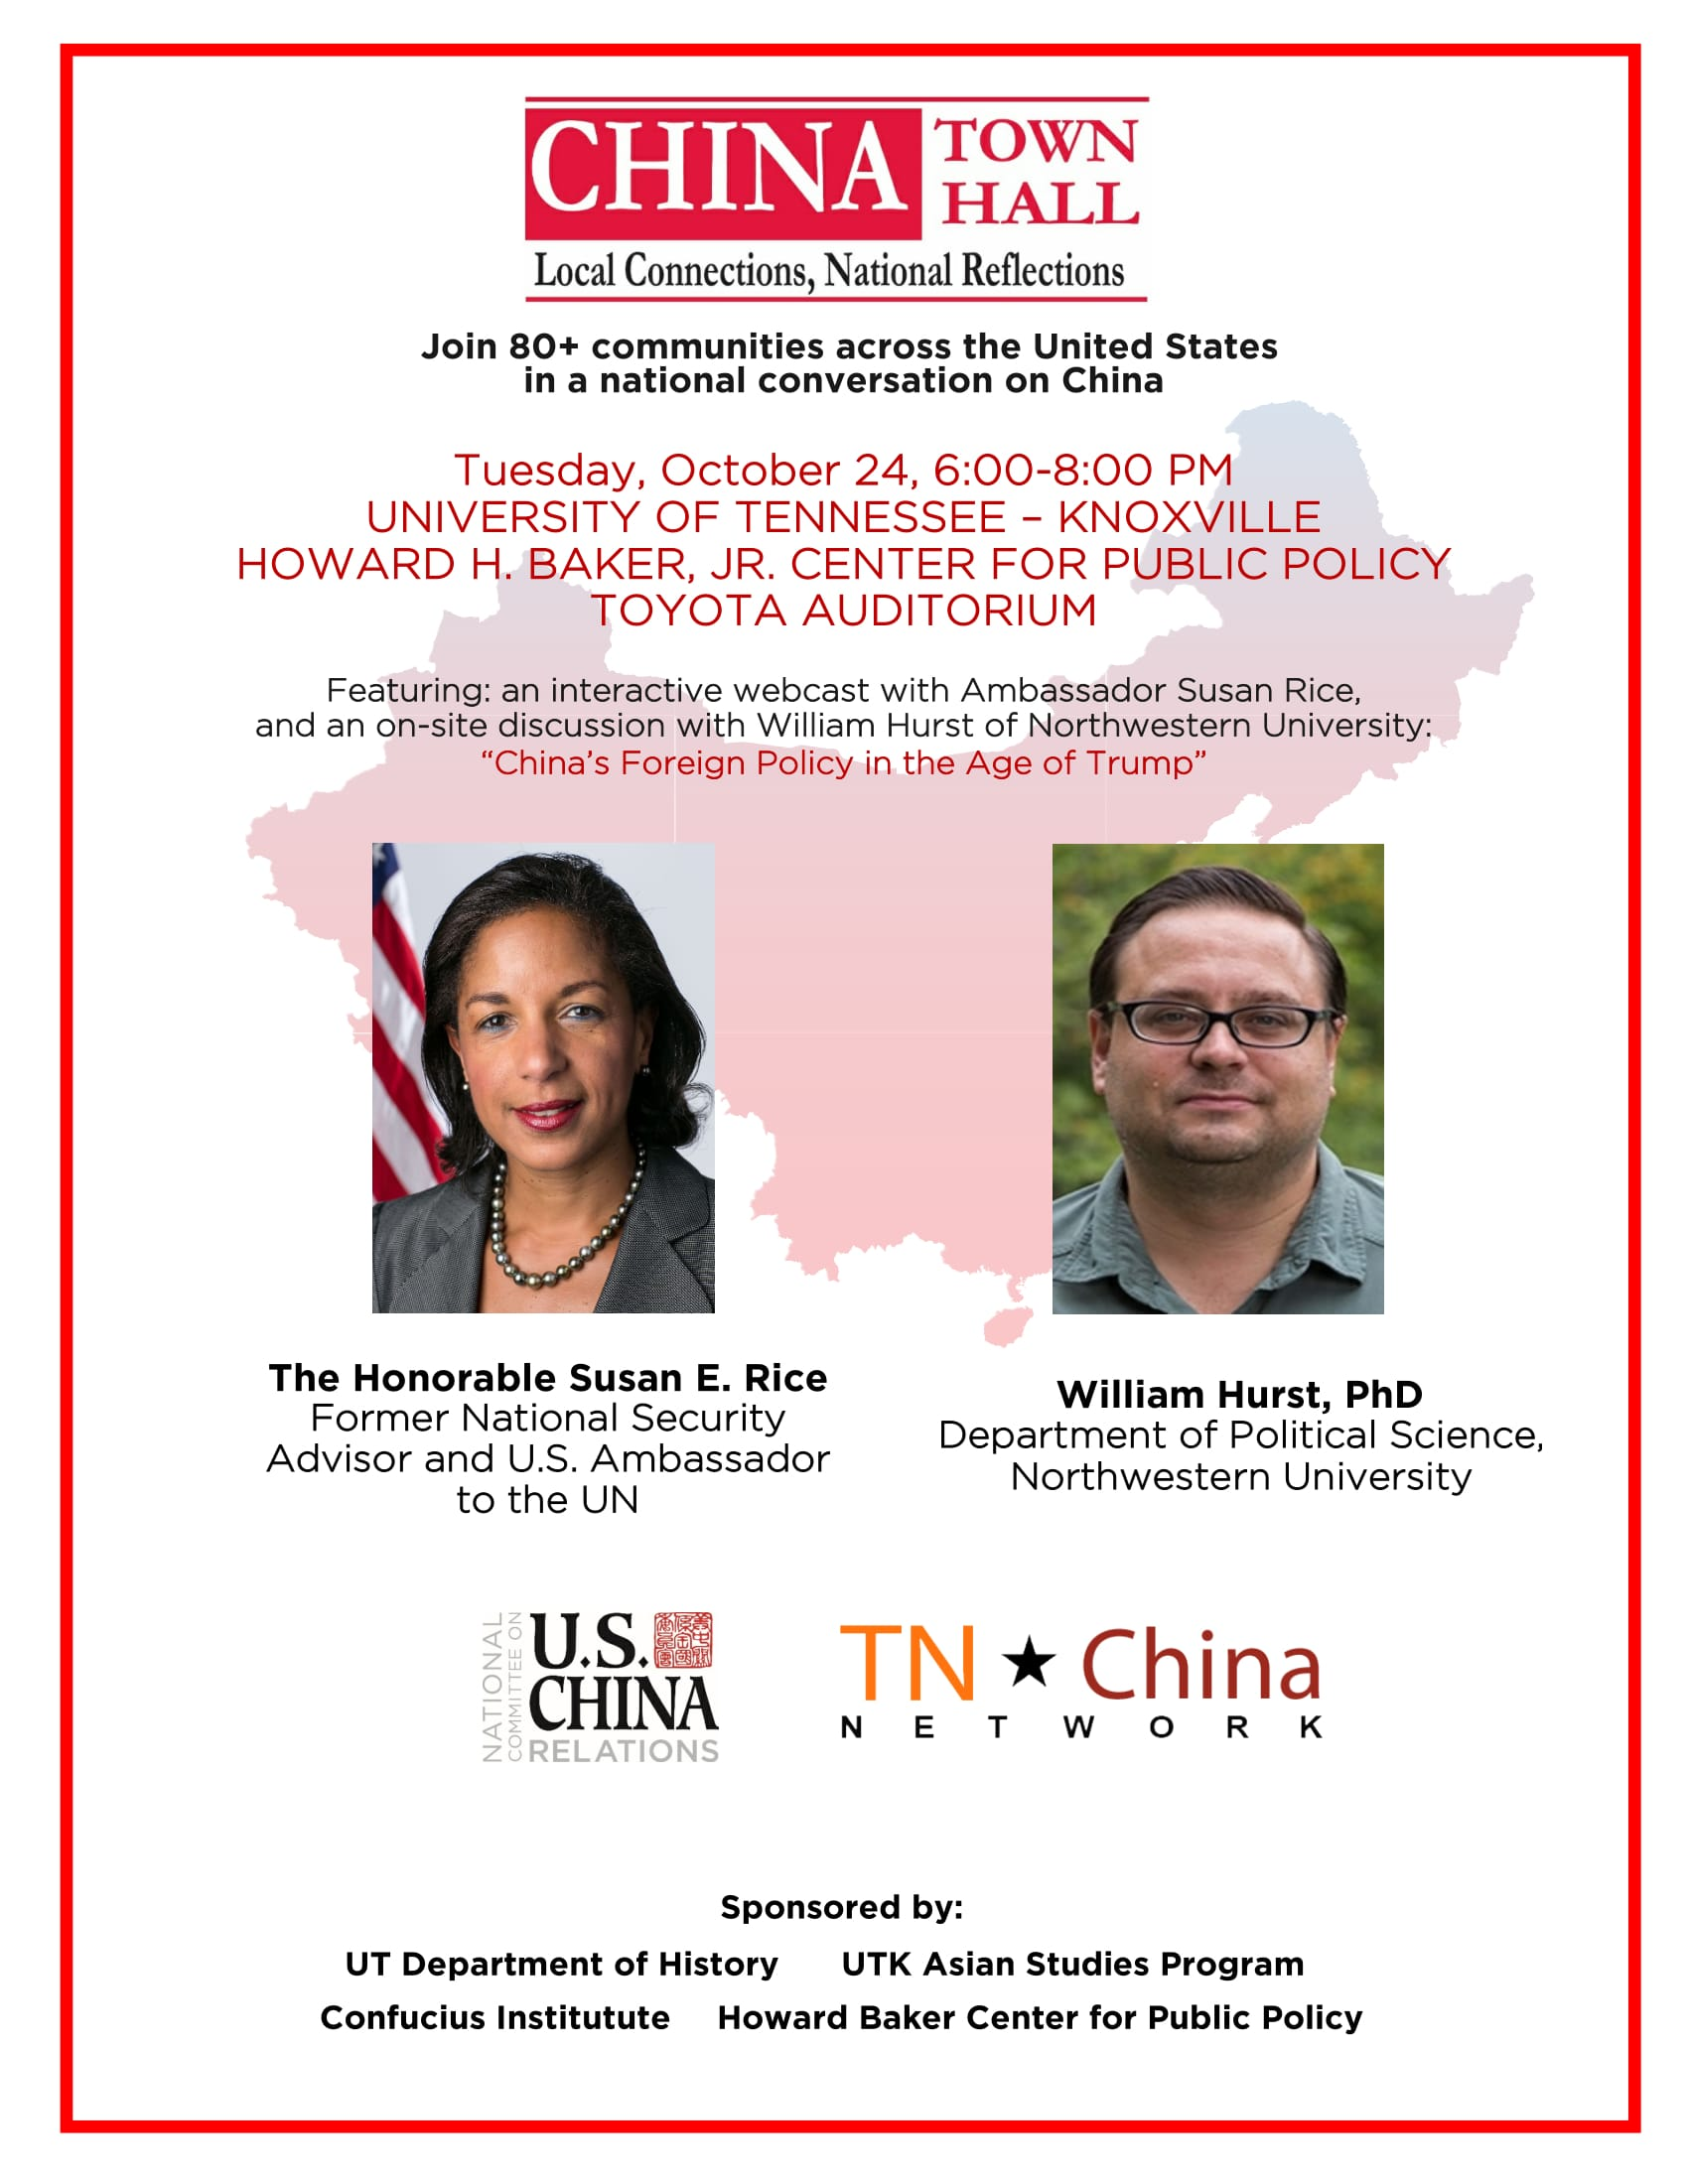 CHINA Town Hall event flier